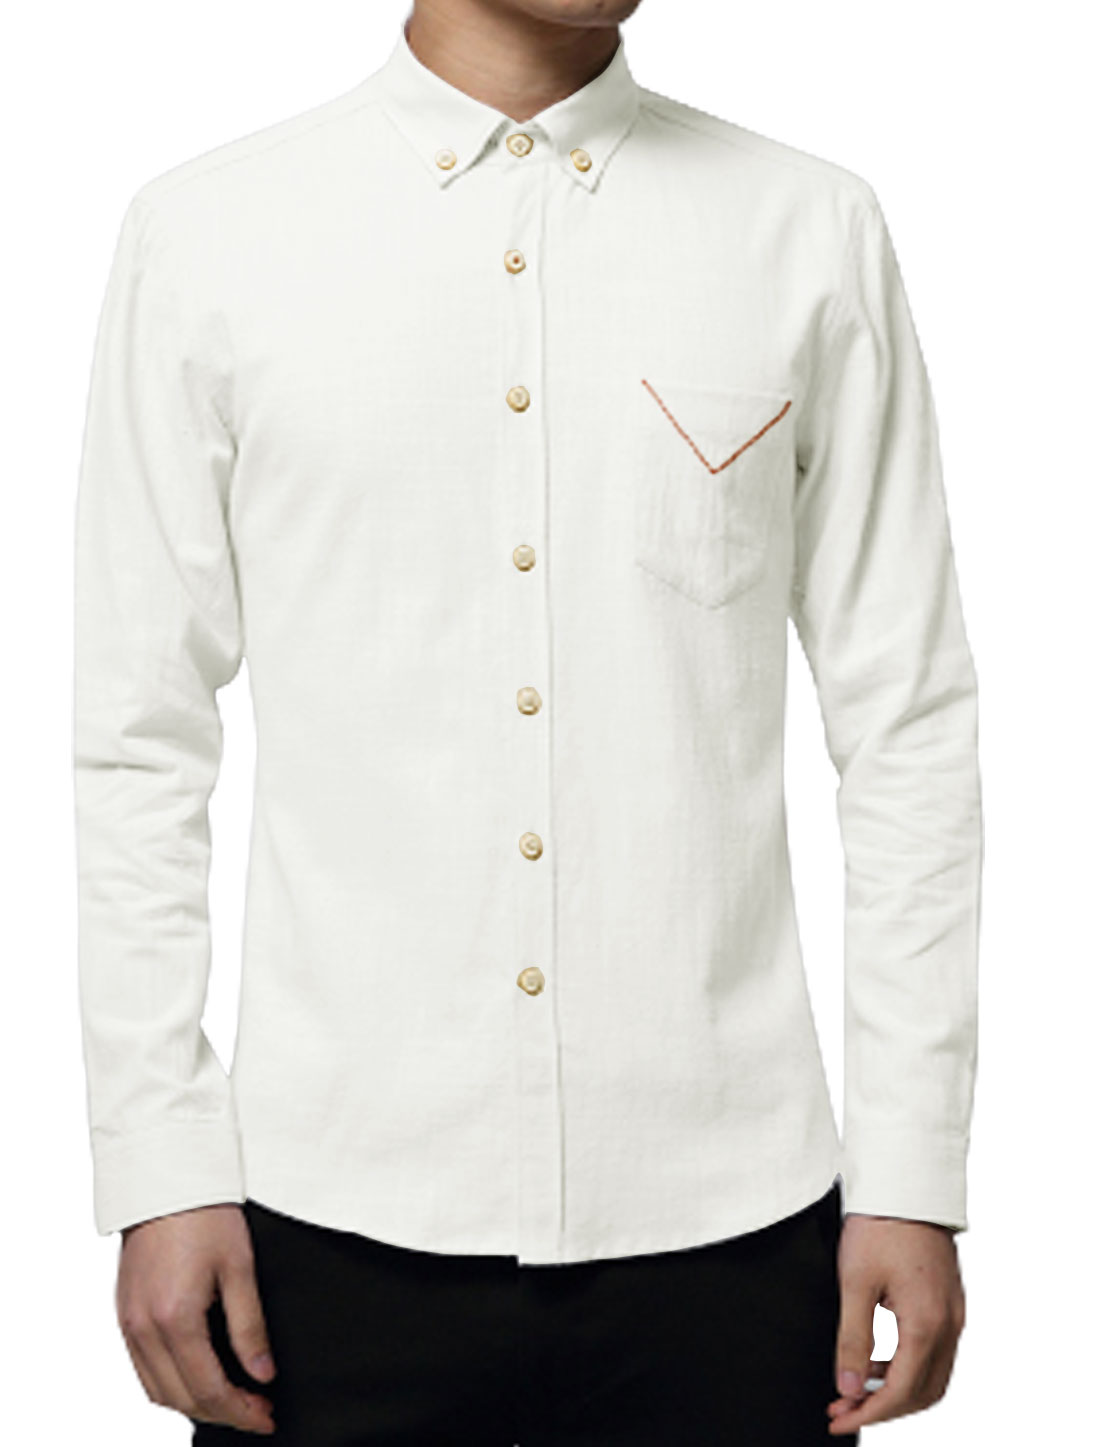 Man Long Sleeves Chest Pocket Slim Fit Button Down Shirt White M